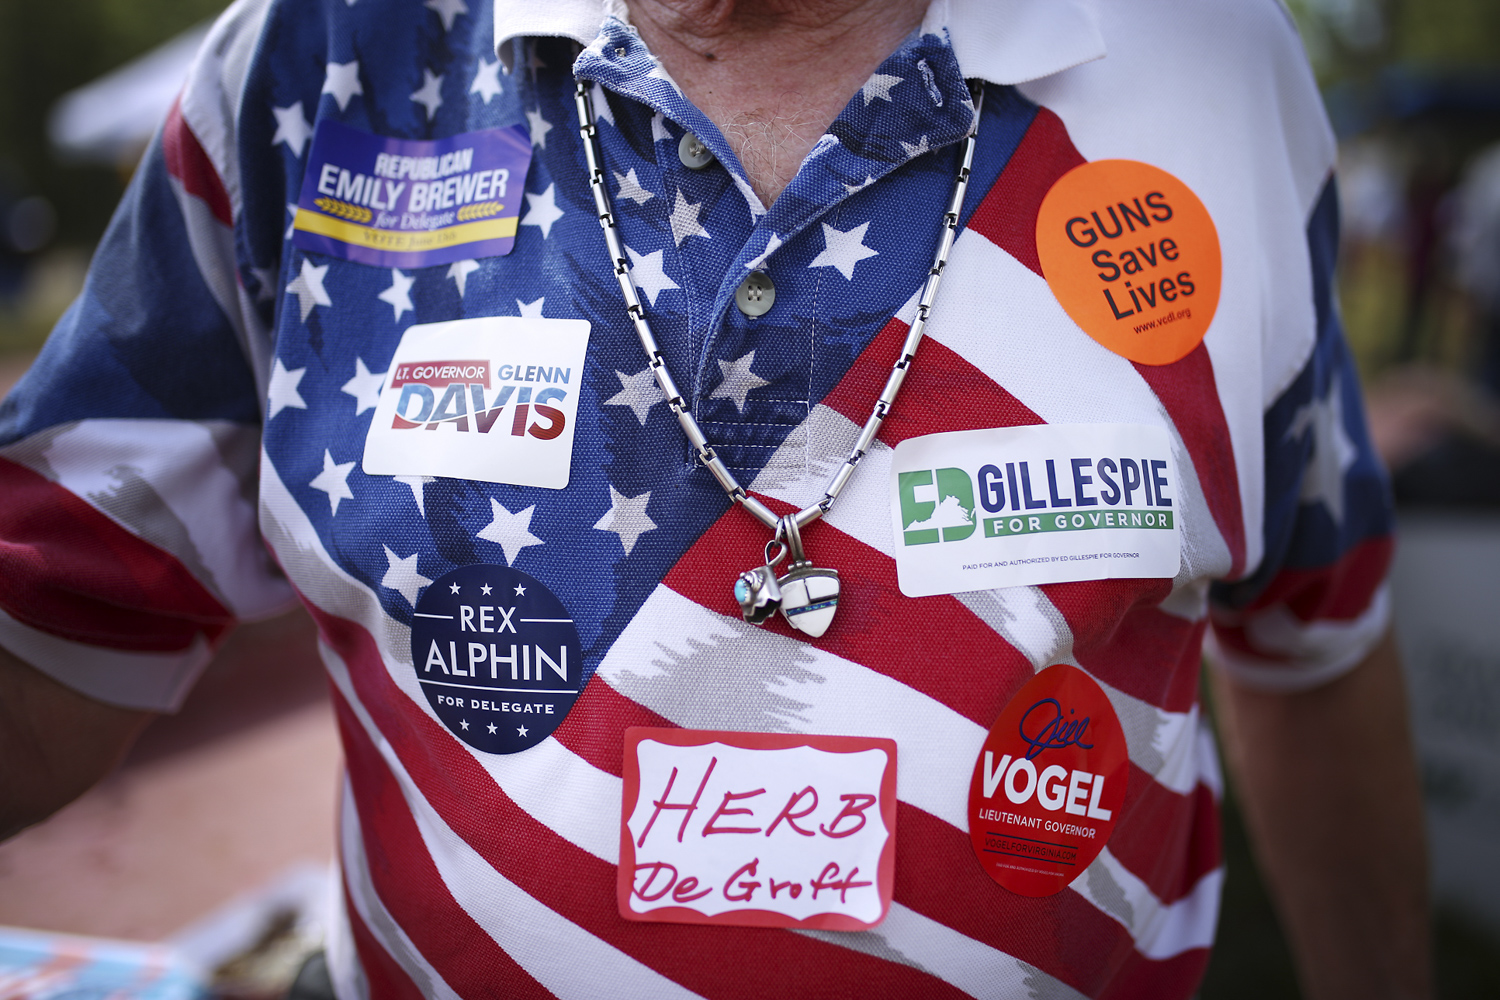 """Herb Groft, from Smithfield, shows off his support for candidates for state seats at The Shad, Grapes and Grains Festival. The Festival raised money for """"the good citizens of Wakefield, Virginia, and the surrounding rural area,"""" according to a statement by the organizers, at the Wakefield Ruritan Club on Friday, April 21, 2017. [Scott P. Yates/progress-index.com]"""